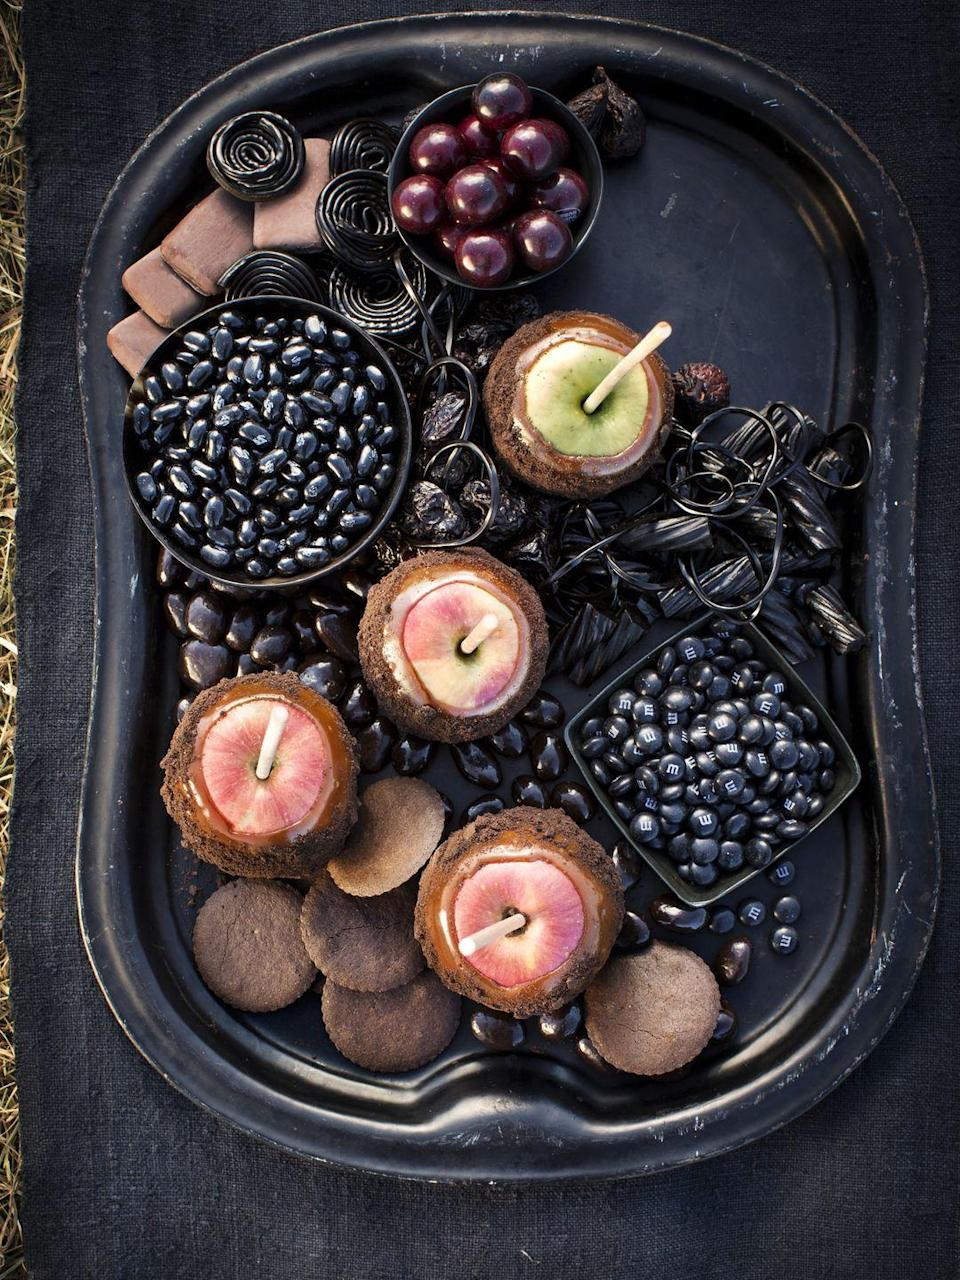 """<p>Equal parts sweet and spooky, this eerie platter is such a festive way to serve your favorite treats. To create a similar spread, fill a board or tray with black licorice, jelly beans, M&M's, chocolate cookies, chocolate-covered nuts, and dried fruit. Add Ree's <a href=""""https://www.thepioneerwoman.com/food-cooking/recipes/a34029134/cookie-coated-caramel-apples-recipe/"""" rel=""""nofollow noopener"""" target=""""_blank"""" data-ylk=""""slk:cookie-coated caramel apples"""" class=""""link rapid-noclick-resp"""">cookie-coated caramel apples</a> to finish it off.</p><p><a class=""""link rapid-noclick-resp"""" href=""""https://go.redirectingat.com?id=74968X1596630&url=https%3A%2F%2Fwww.walmart.com%2Fsearch%2F%3Fquery%3Dthe%2Bpioneer%2Bwoman%2Bserving%2Bplatters&sref=https%3A%2F%2Fwww.thepioneerwoman.com%2Ffood-cooking%2Fmeals-menus%2Fg32110899%2Fbest-halloween-desserts%2F"""" rel=""""nofollow noopener"""" target=""""_blank"""" data-ylk=""""slk:SHOP SERVING PLATTERS"""">SHOP SERVING PLATTERS</a></p>"""